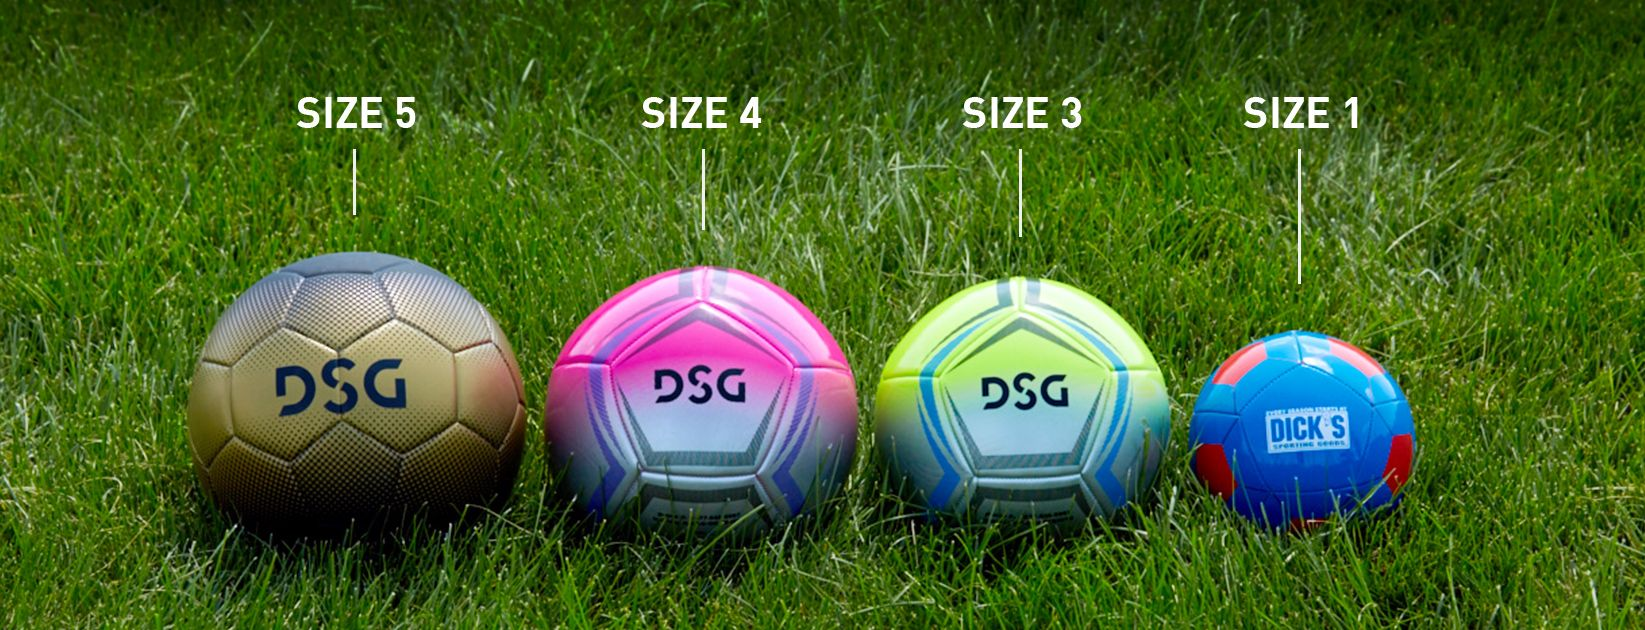 Soccer balls with size labels in grass